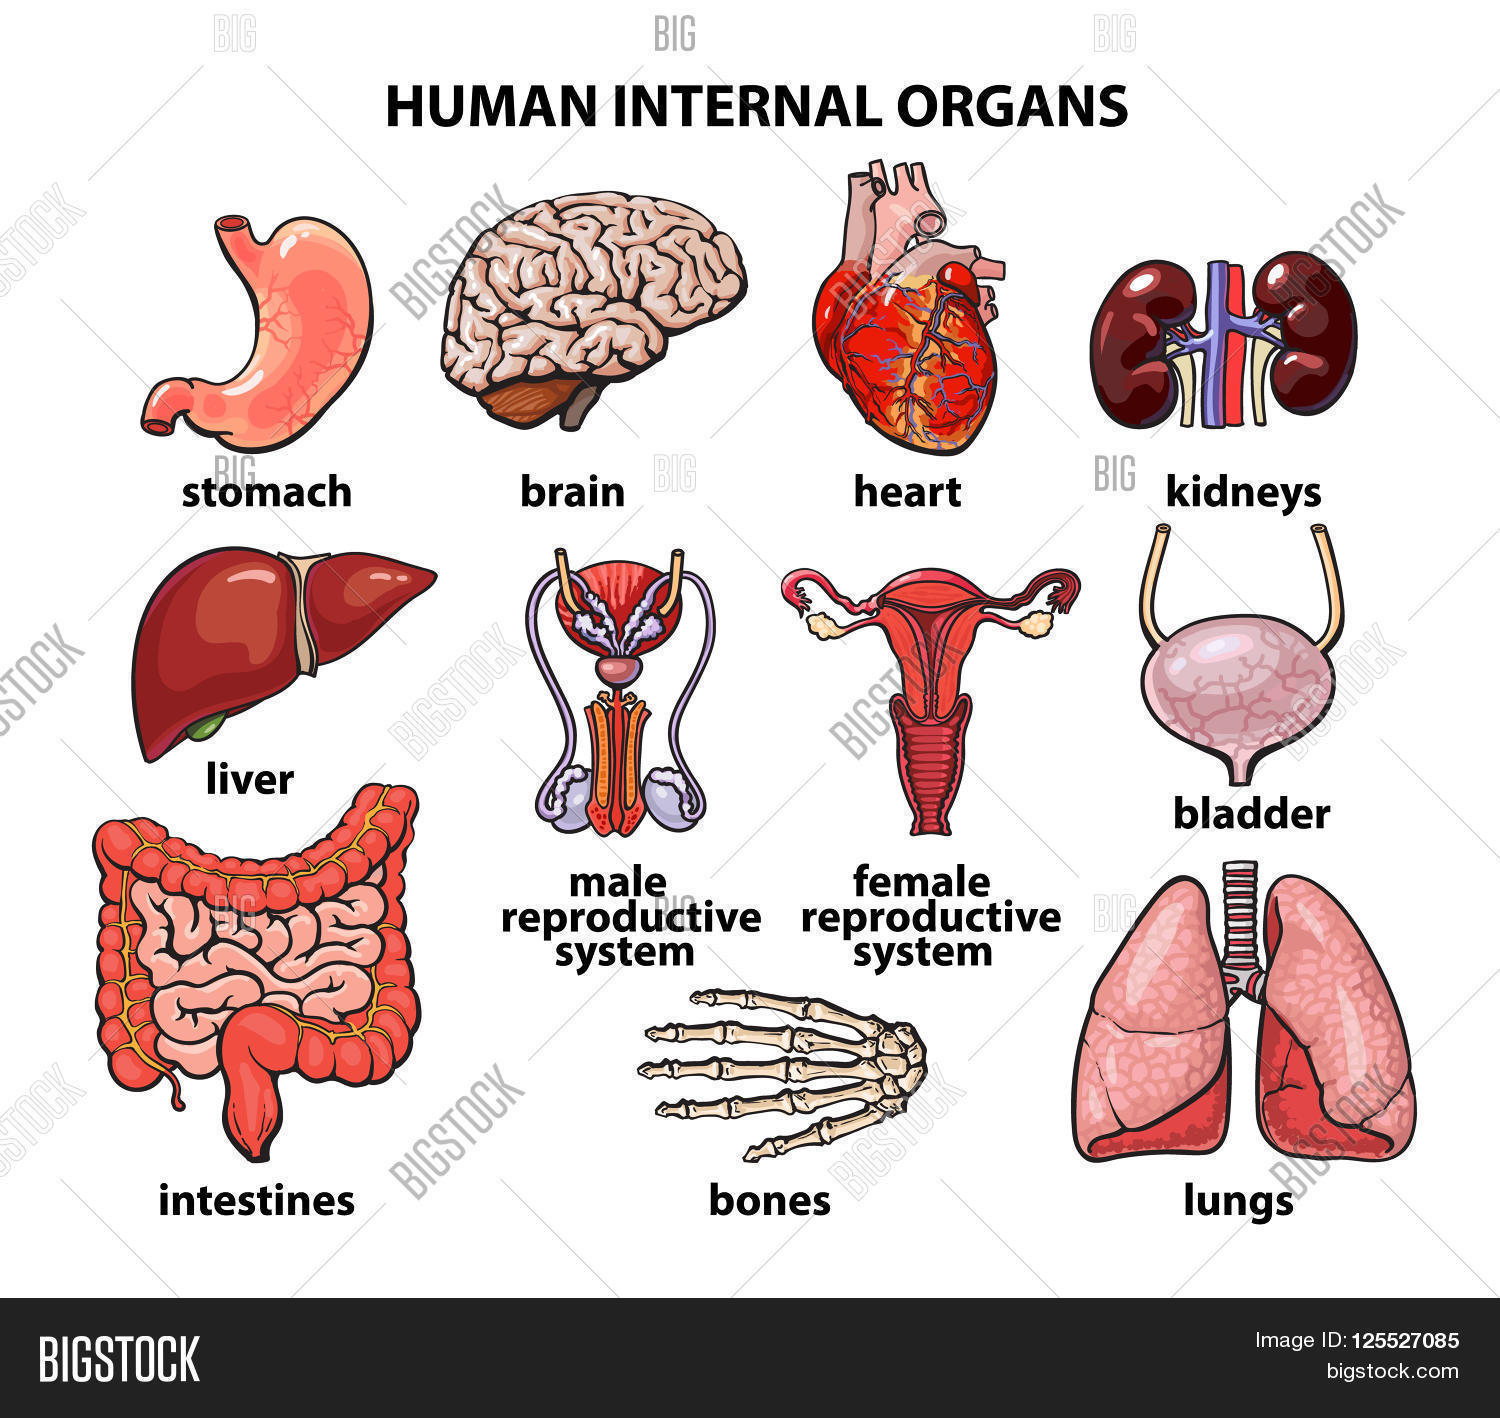 Picture of internal body organs